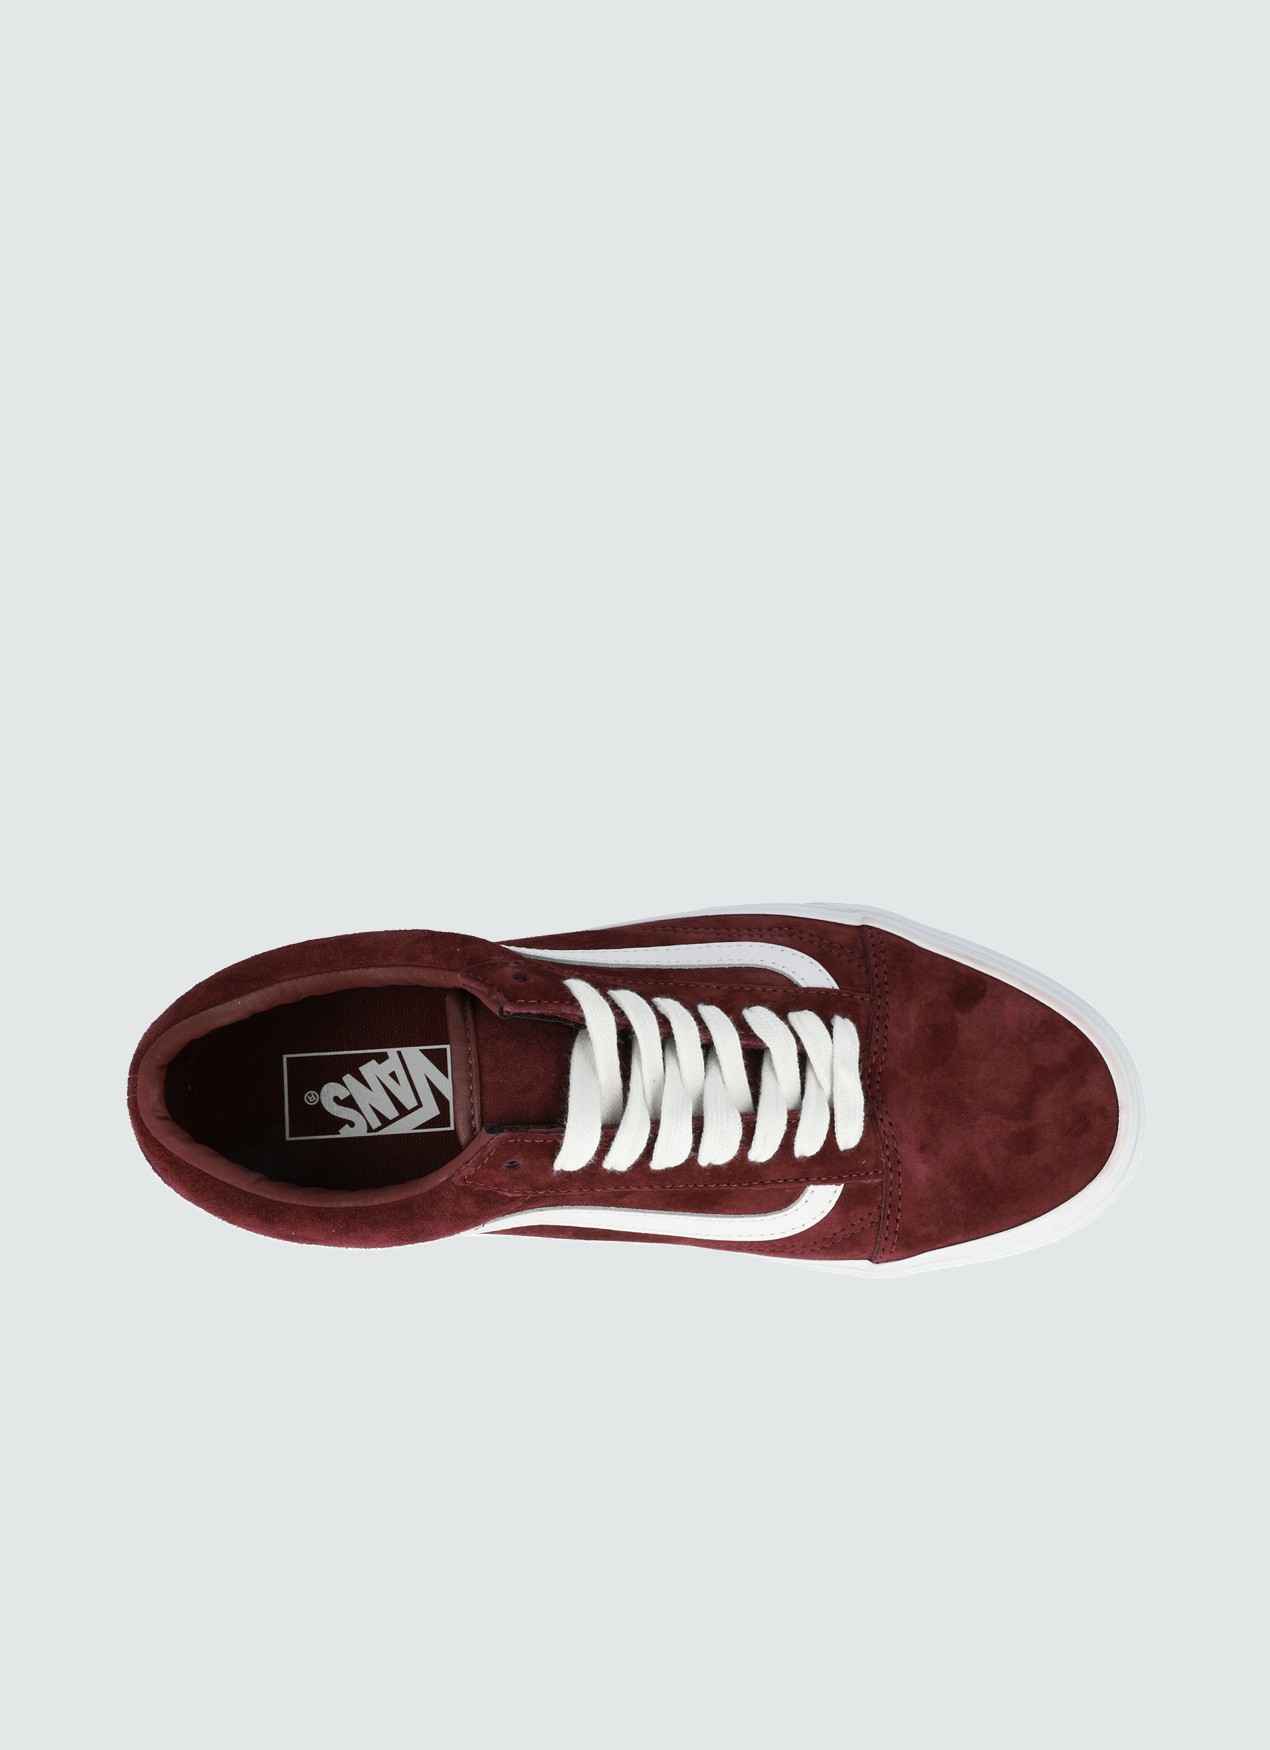 Vans Old Skool - Port Royale